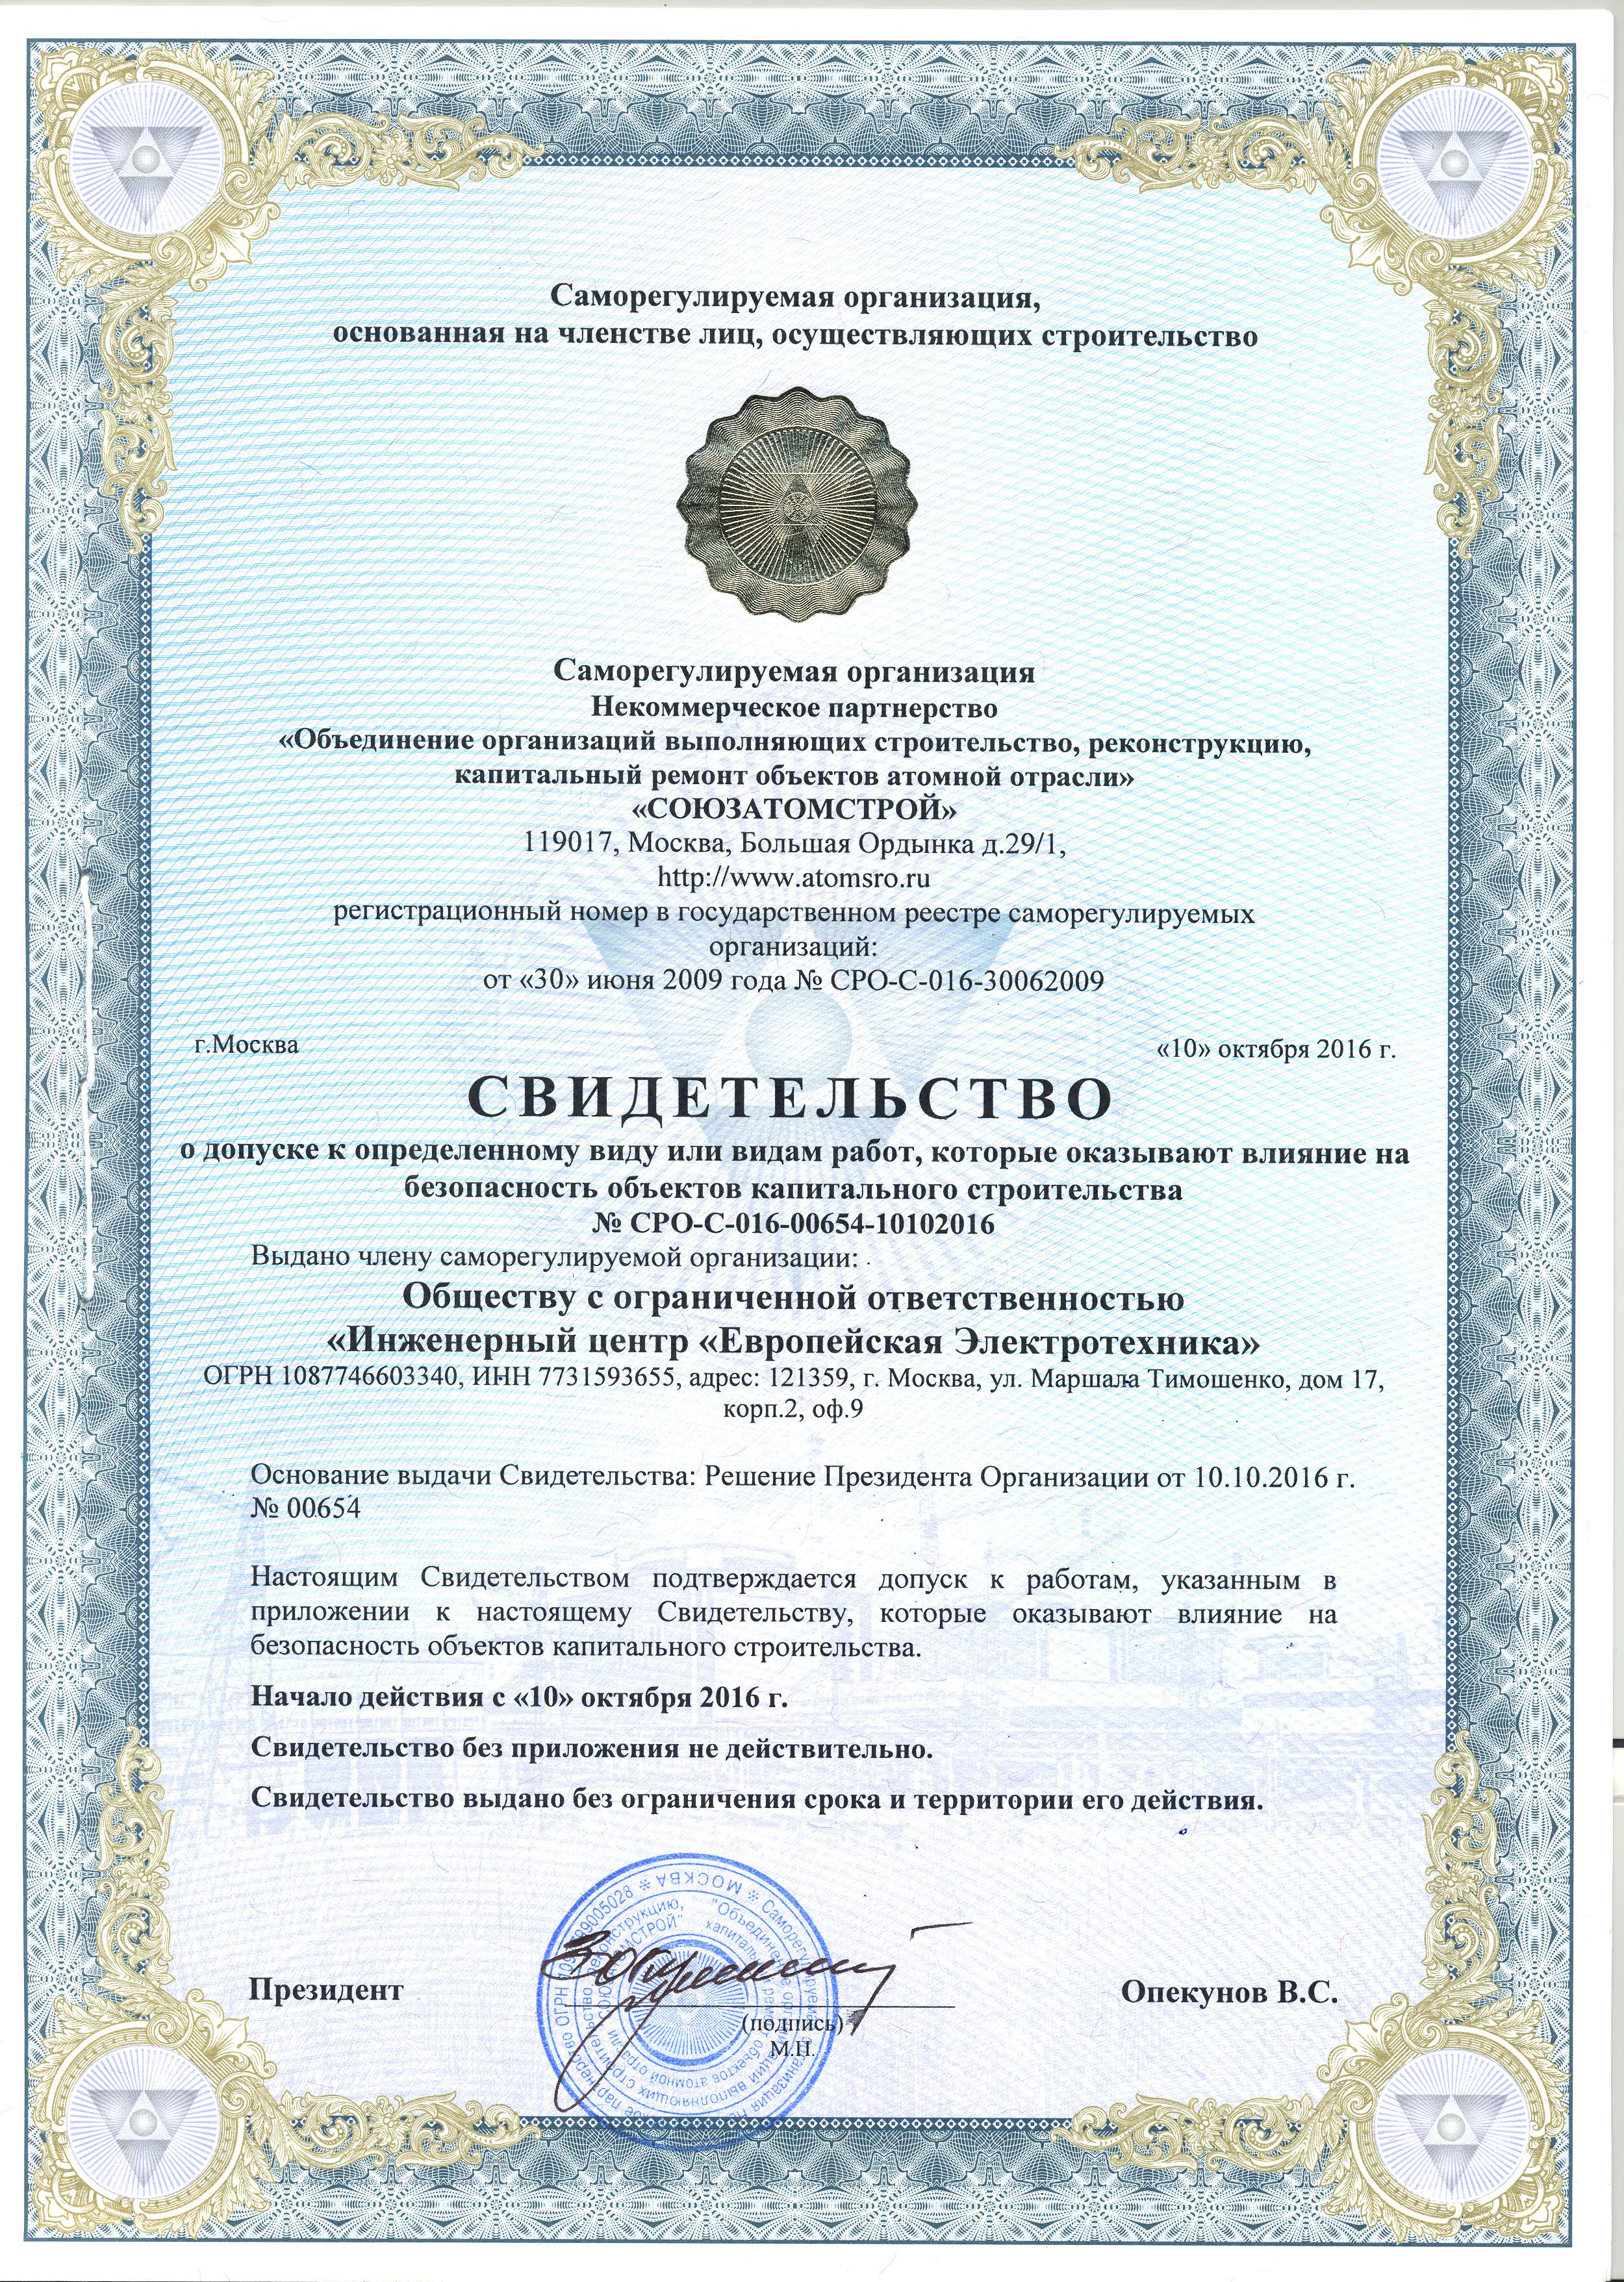 Certificate of Admission to Certain Types of Work